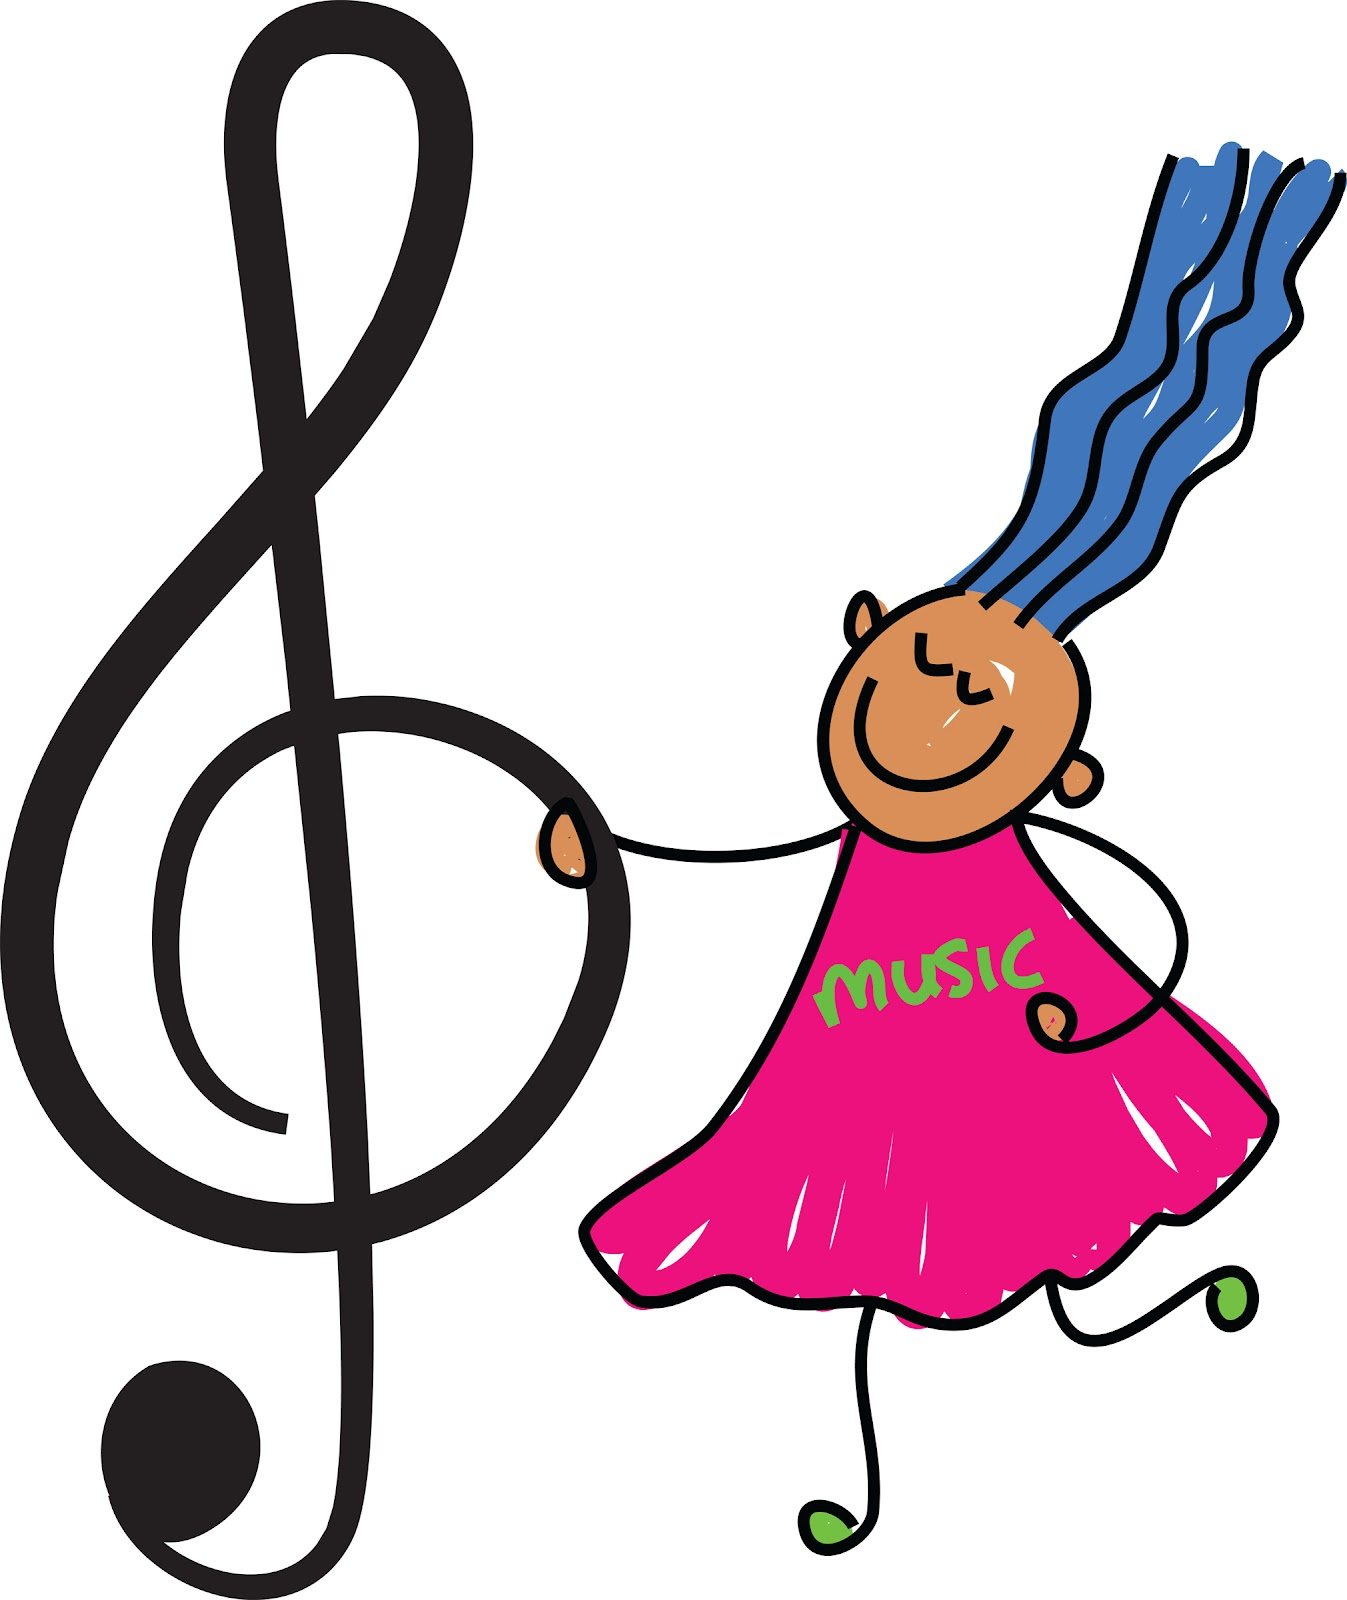 Sheet Music clipart music director Info Free Clipart 17 free